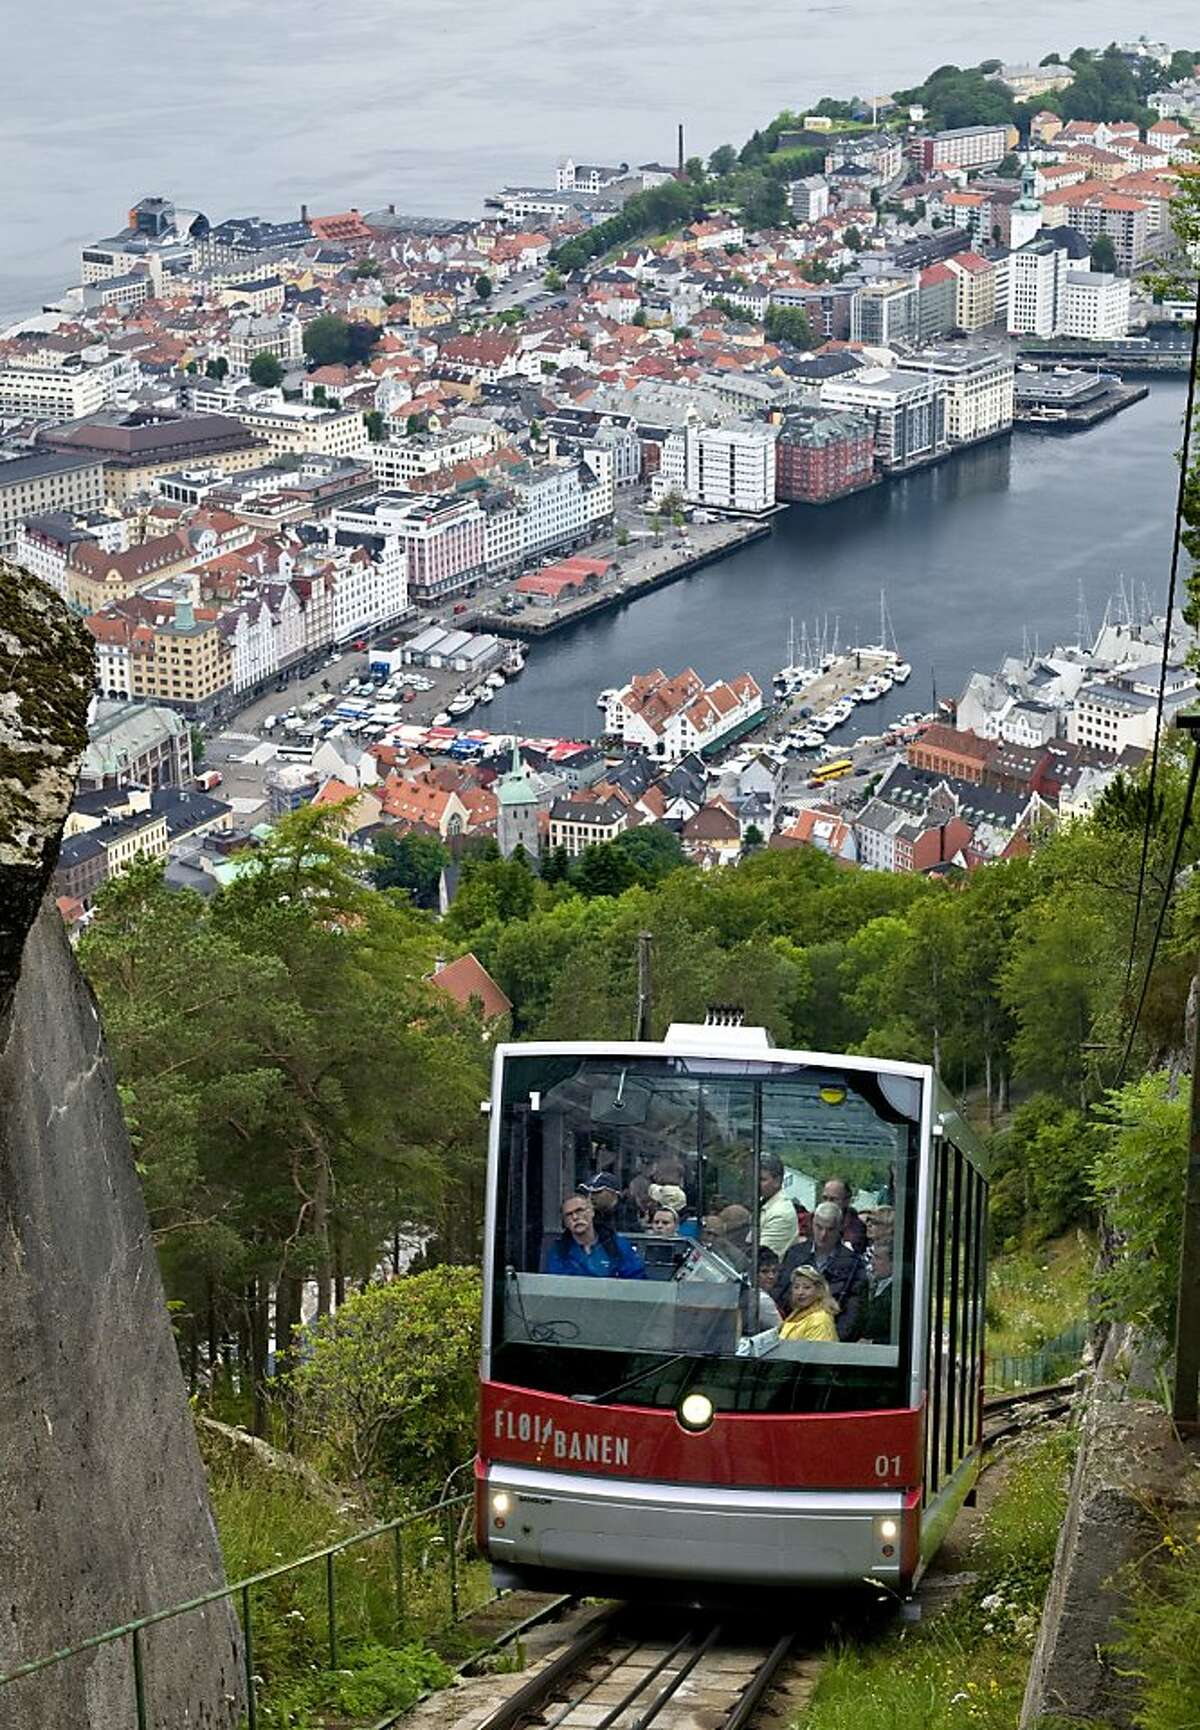 Floien cablecar ascending Floyen hill with Bergen harbour in background.